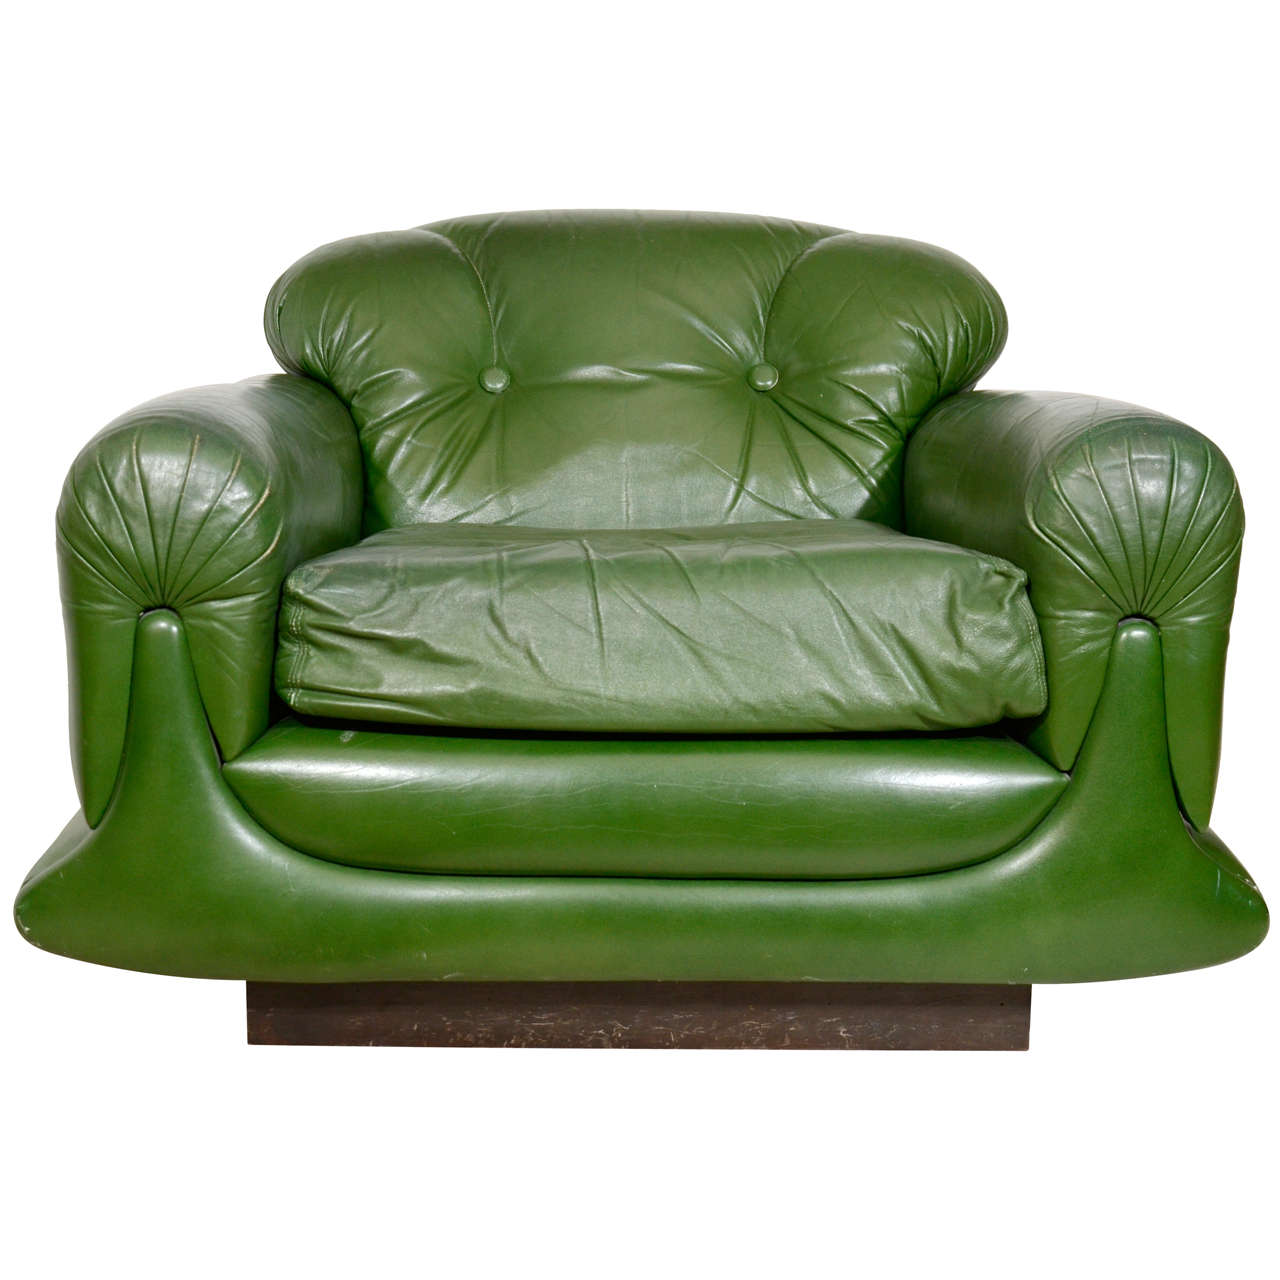 Merveilleux Mod Overstuffed Green Leather Lounge Chair For Sale